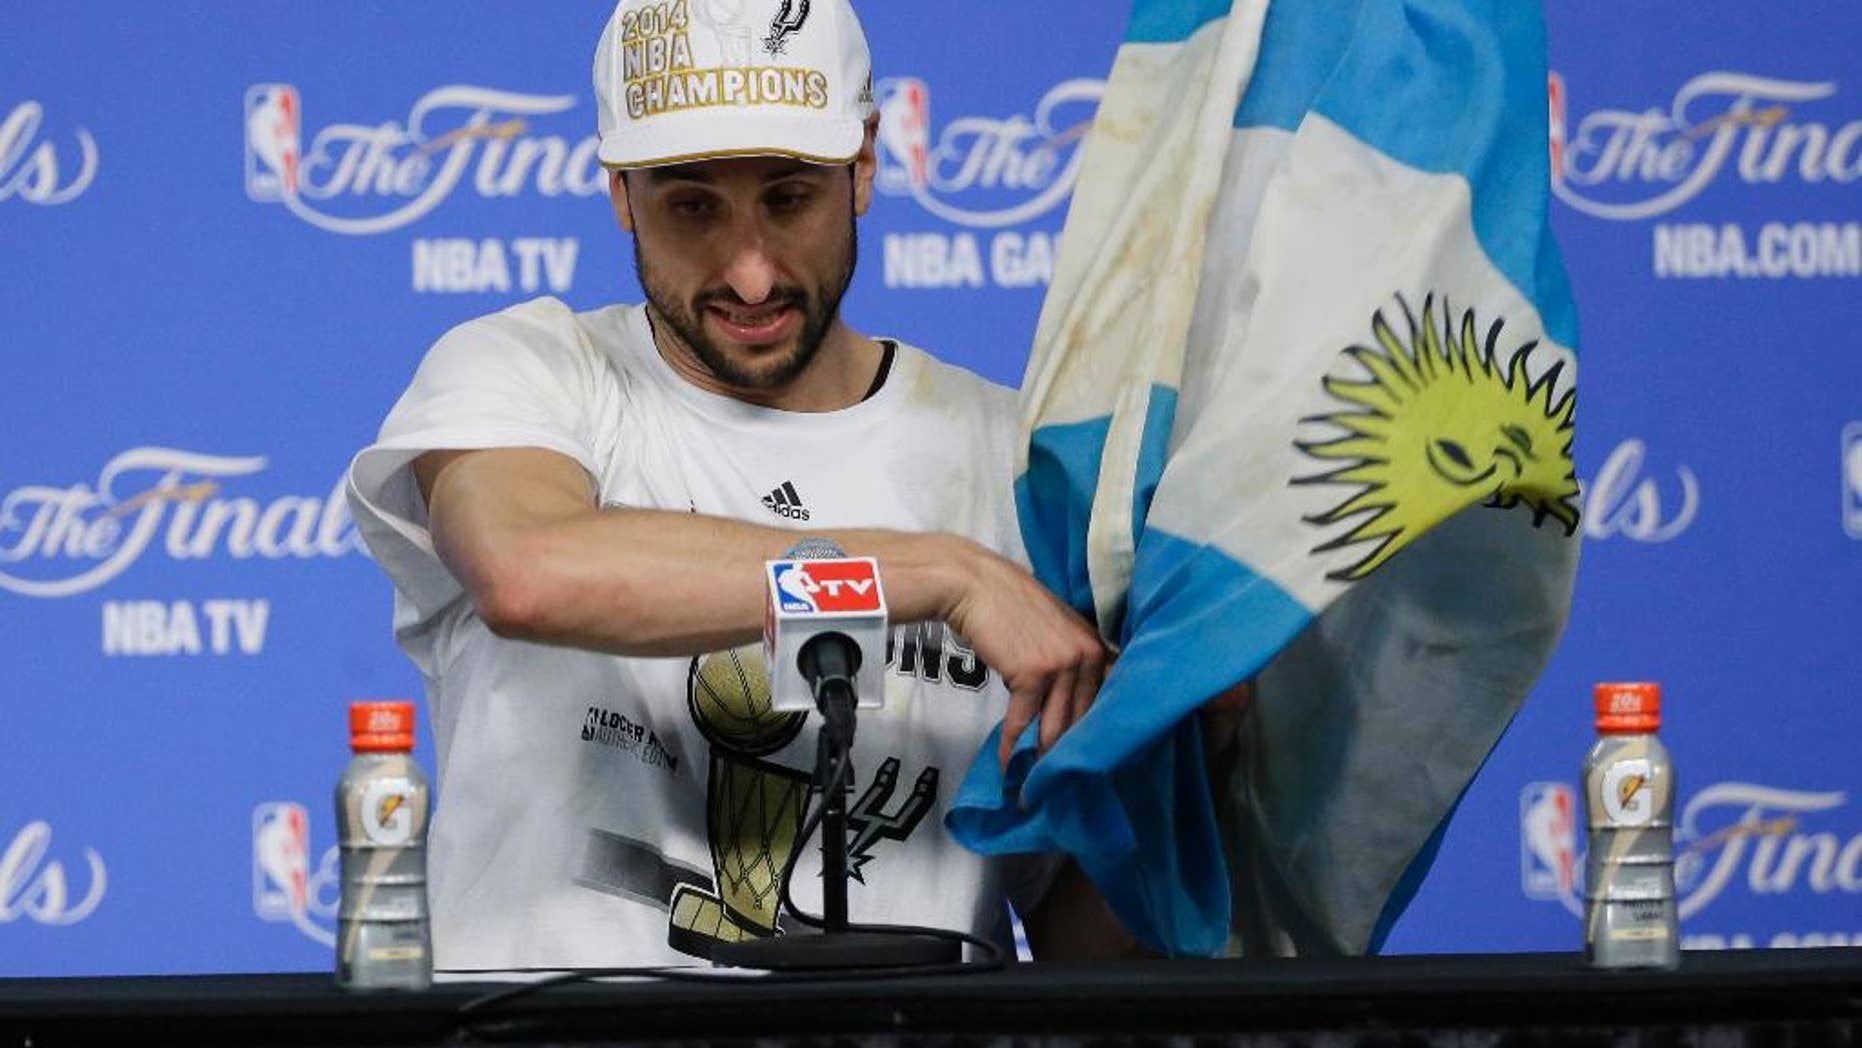 San Antonio Spurs guard Manu Ginobili arrives for a news conference after  Game 5 of the NBA basketball finals against the Miami Heat on Sunday, June 15, 2014, in San Antonio. (AP Photo/Tony Gutierrez)